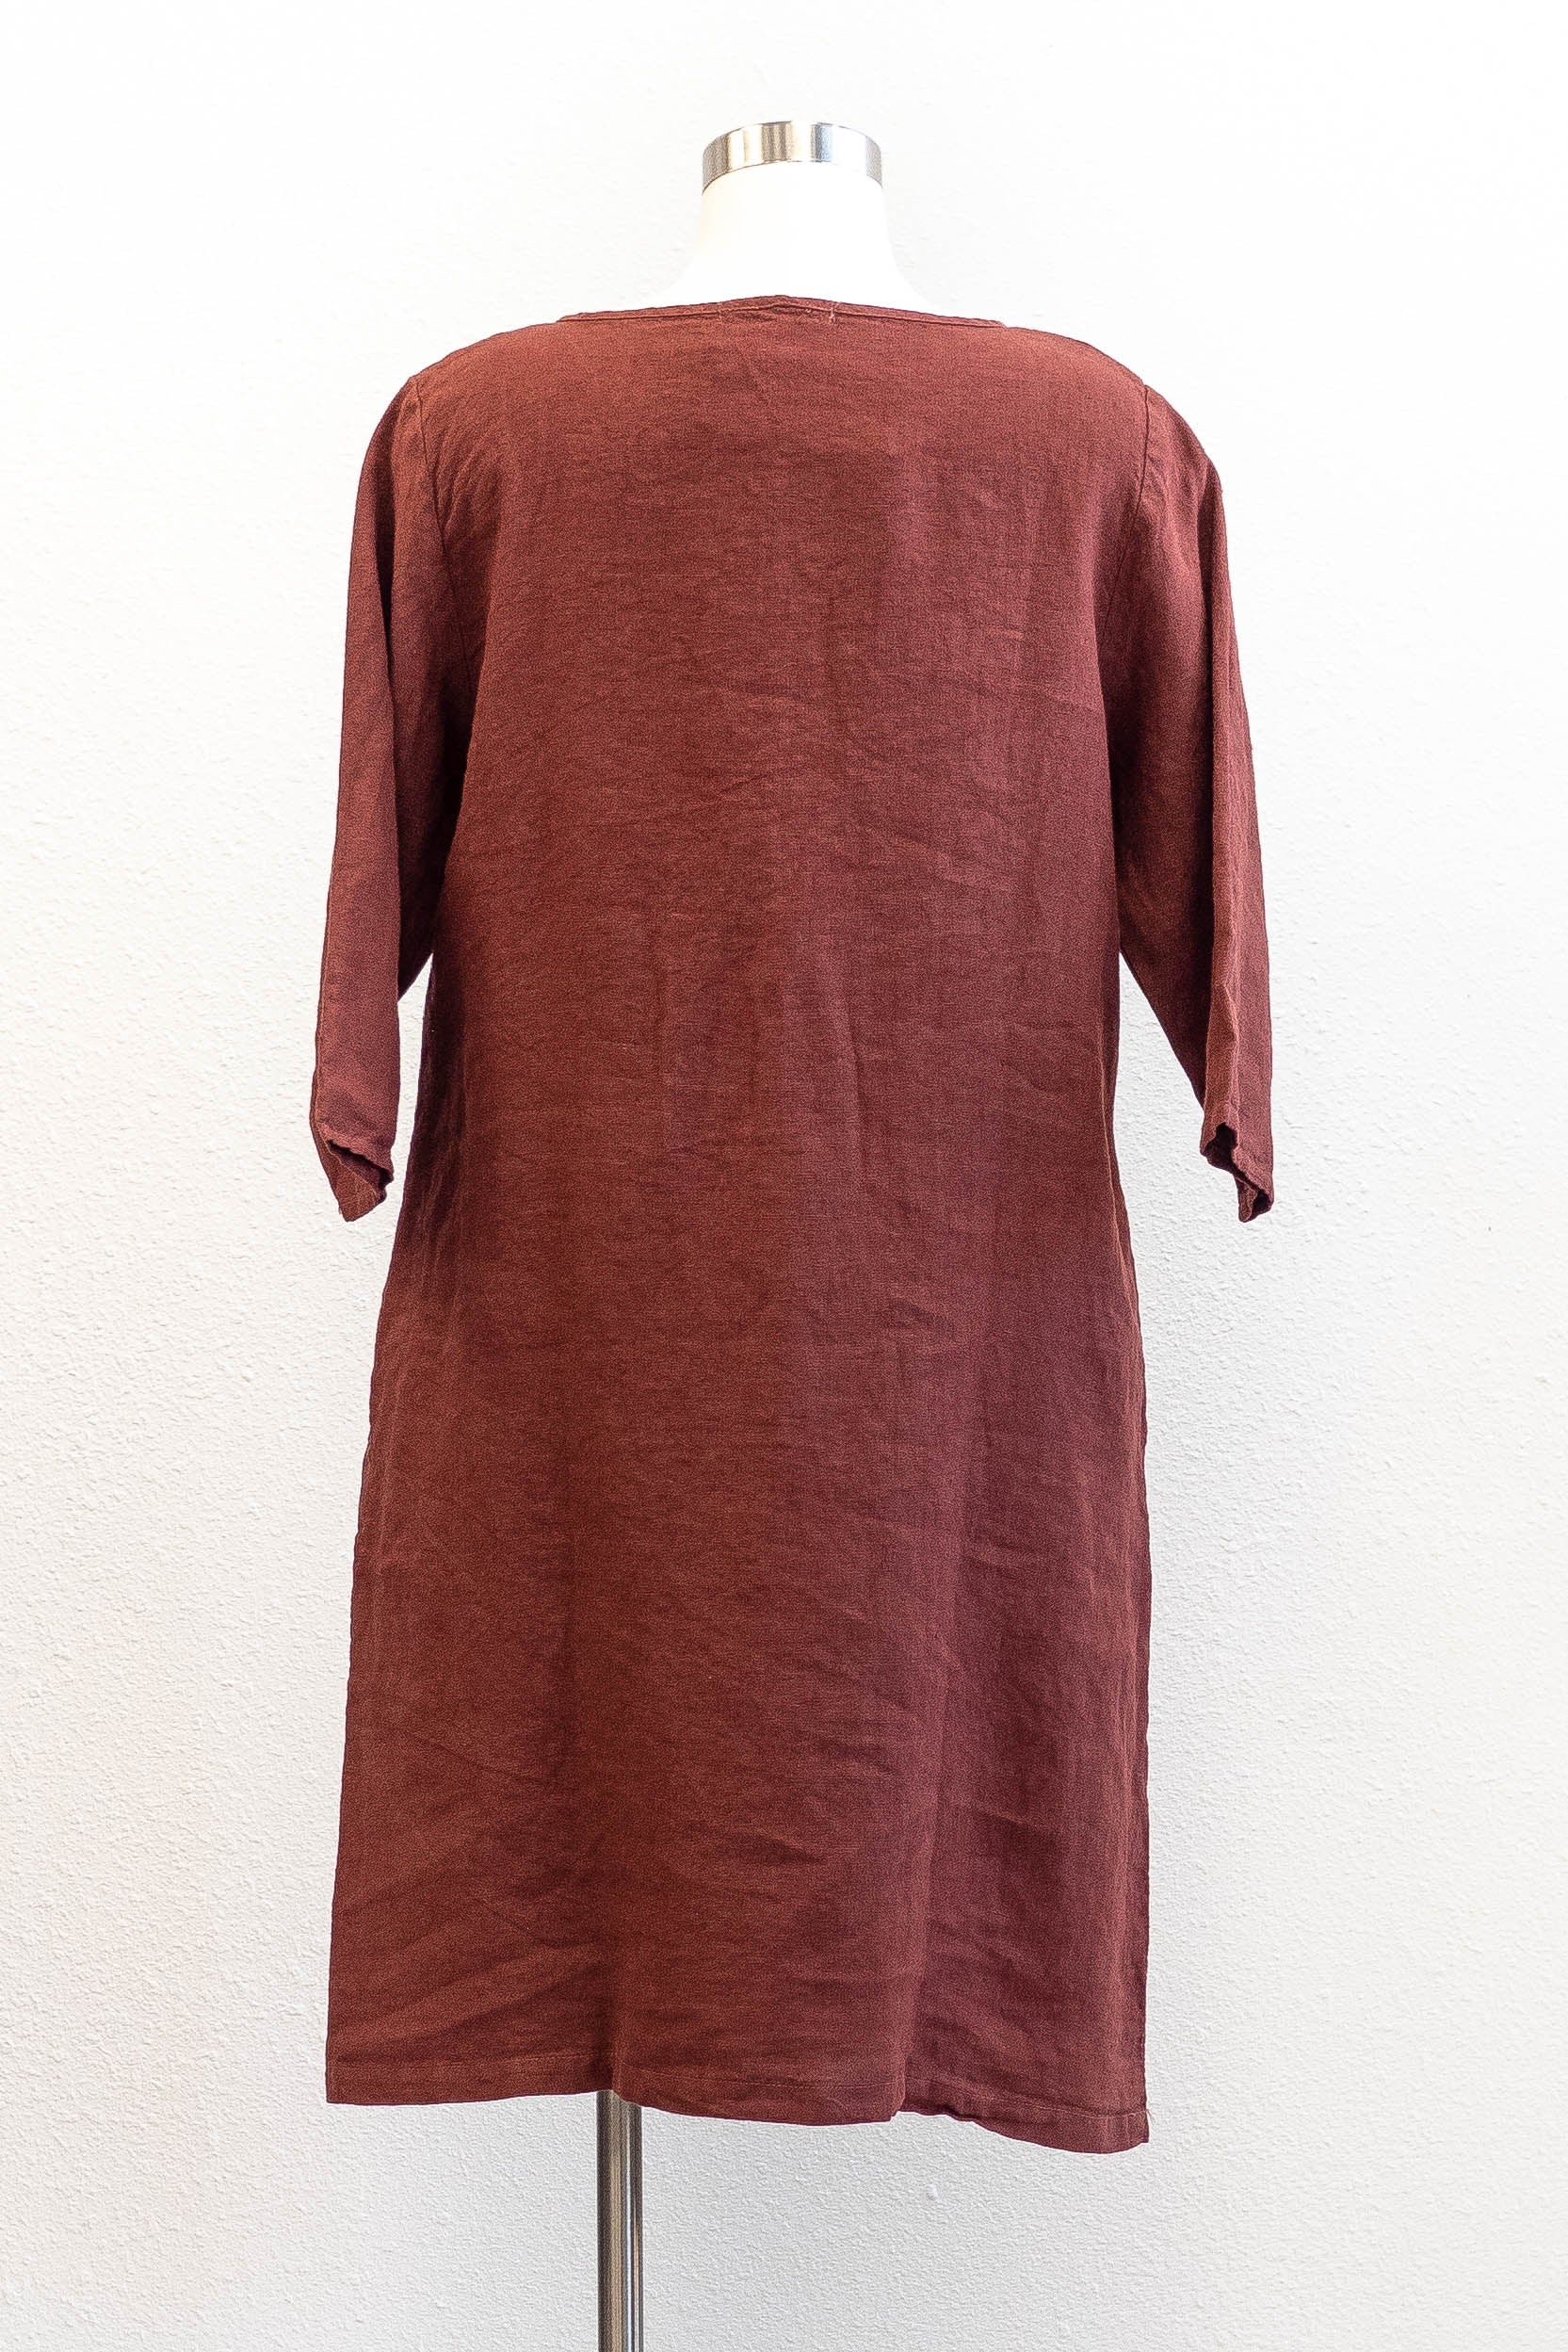 Cut Loose Tie Tunic Dress In Natural Linen Cognac Cloz To Home